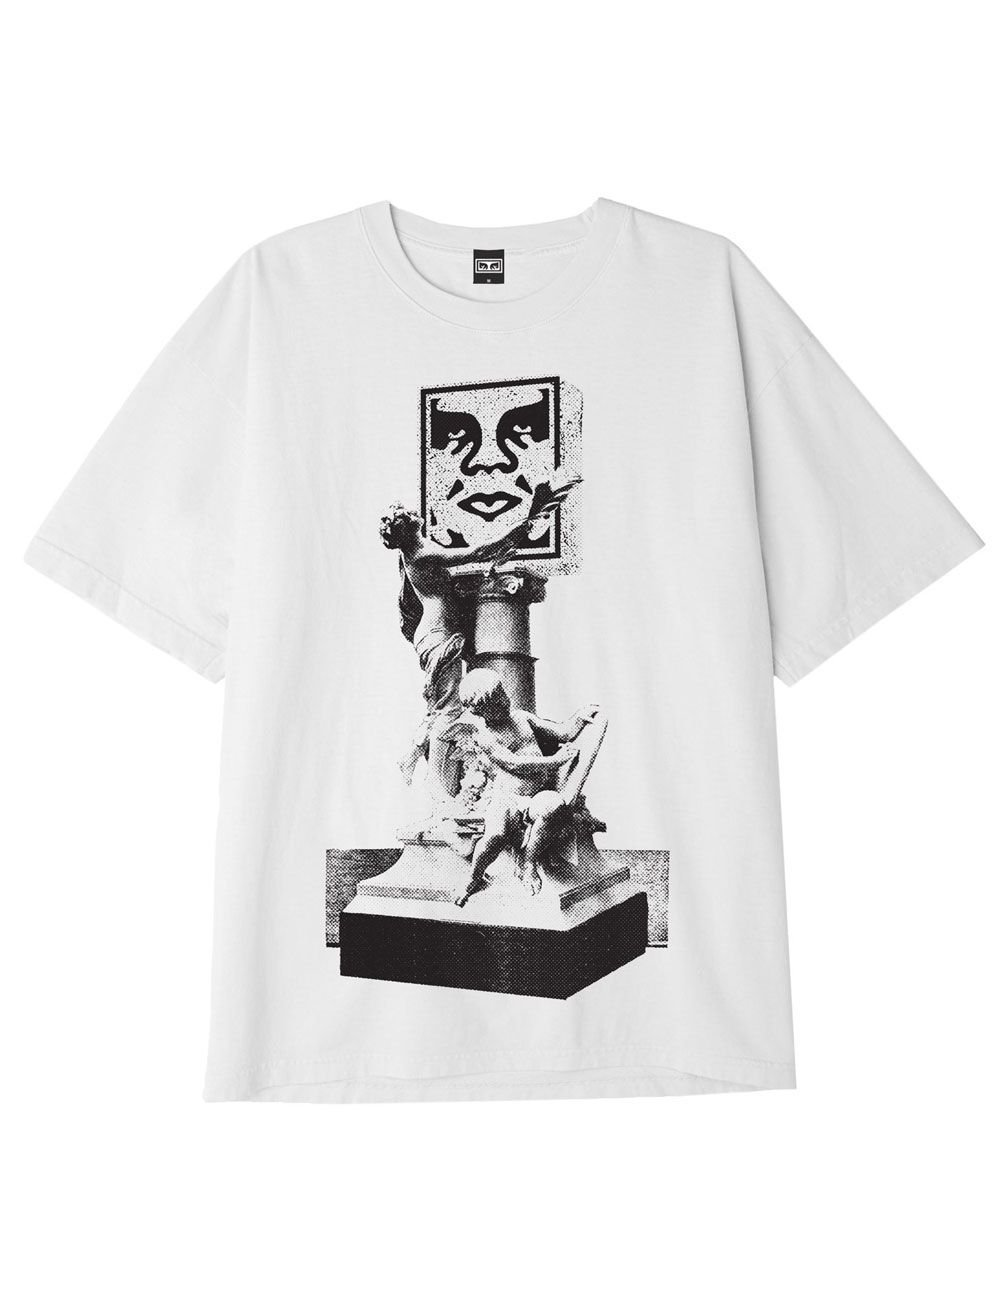 Obey Obey bust heavyweight t-shirt 166912674